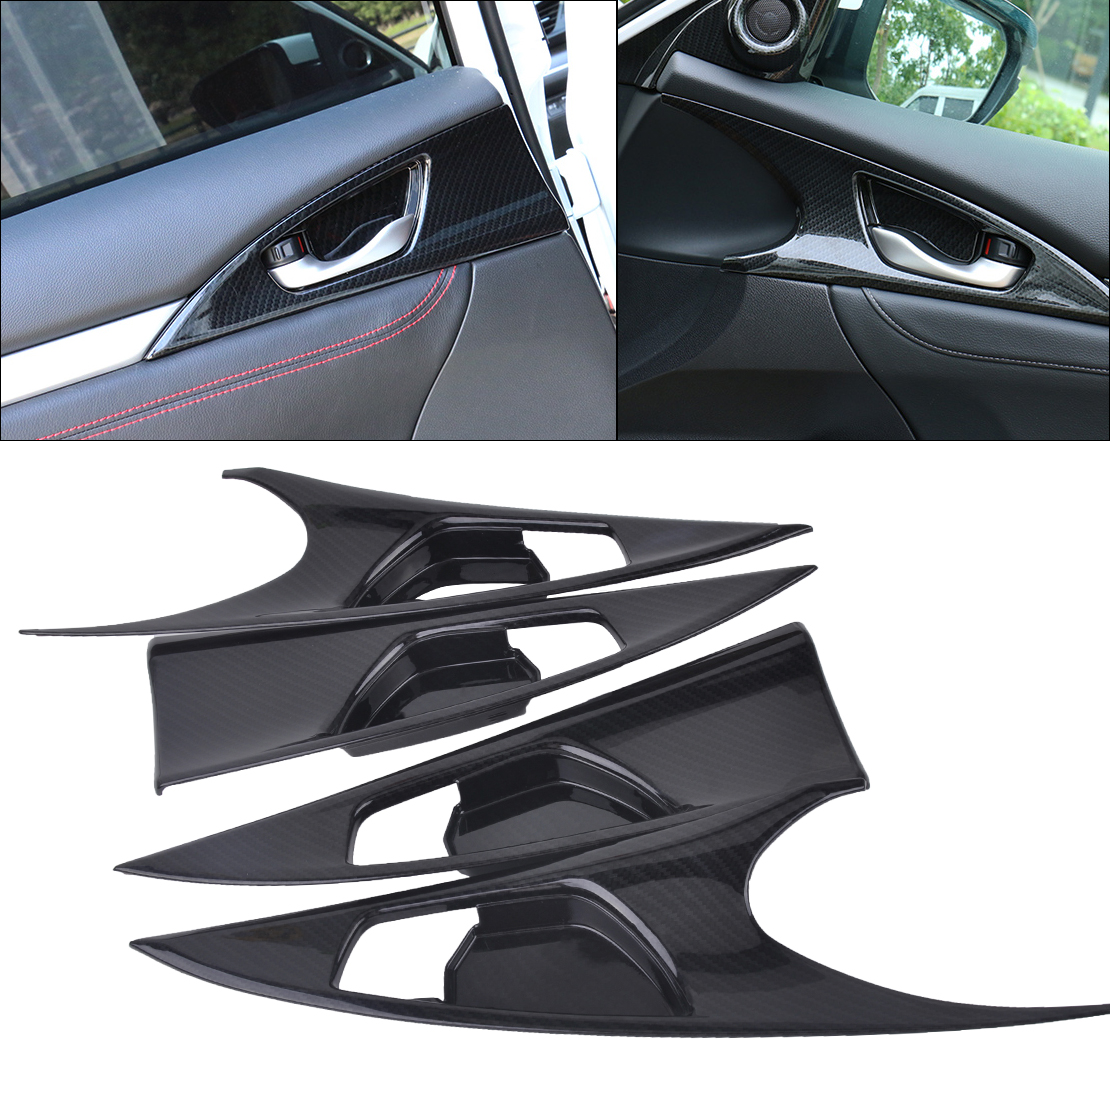 ABS Carbon Fiber Style Side Door Handle Bowl Cover For Honda Civic 2016 2017